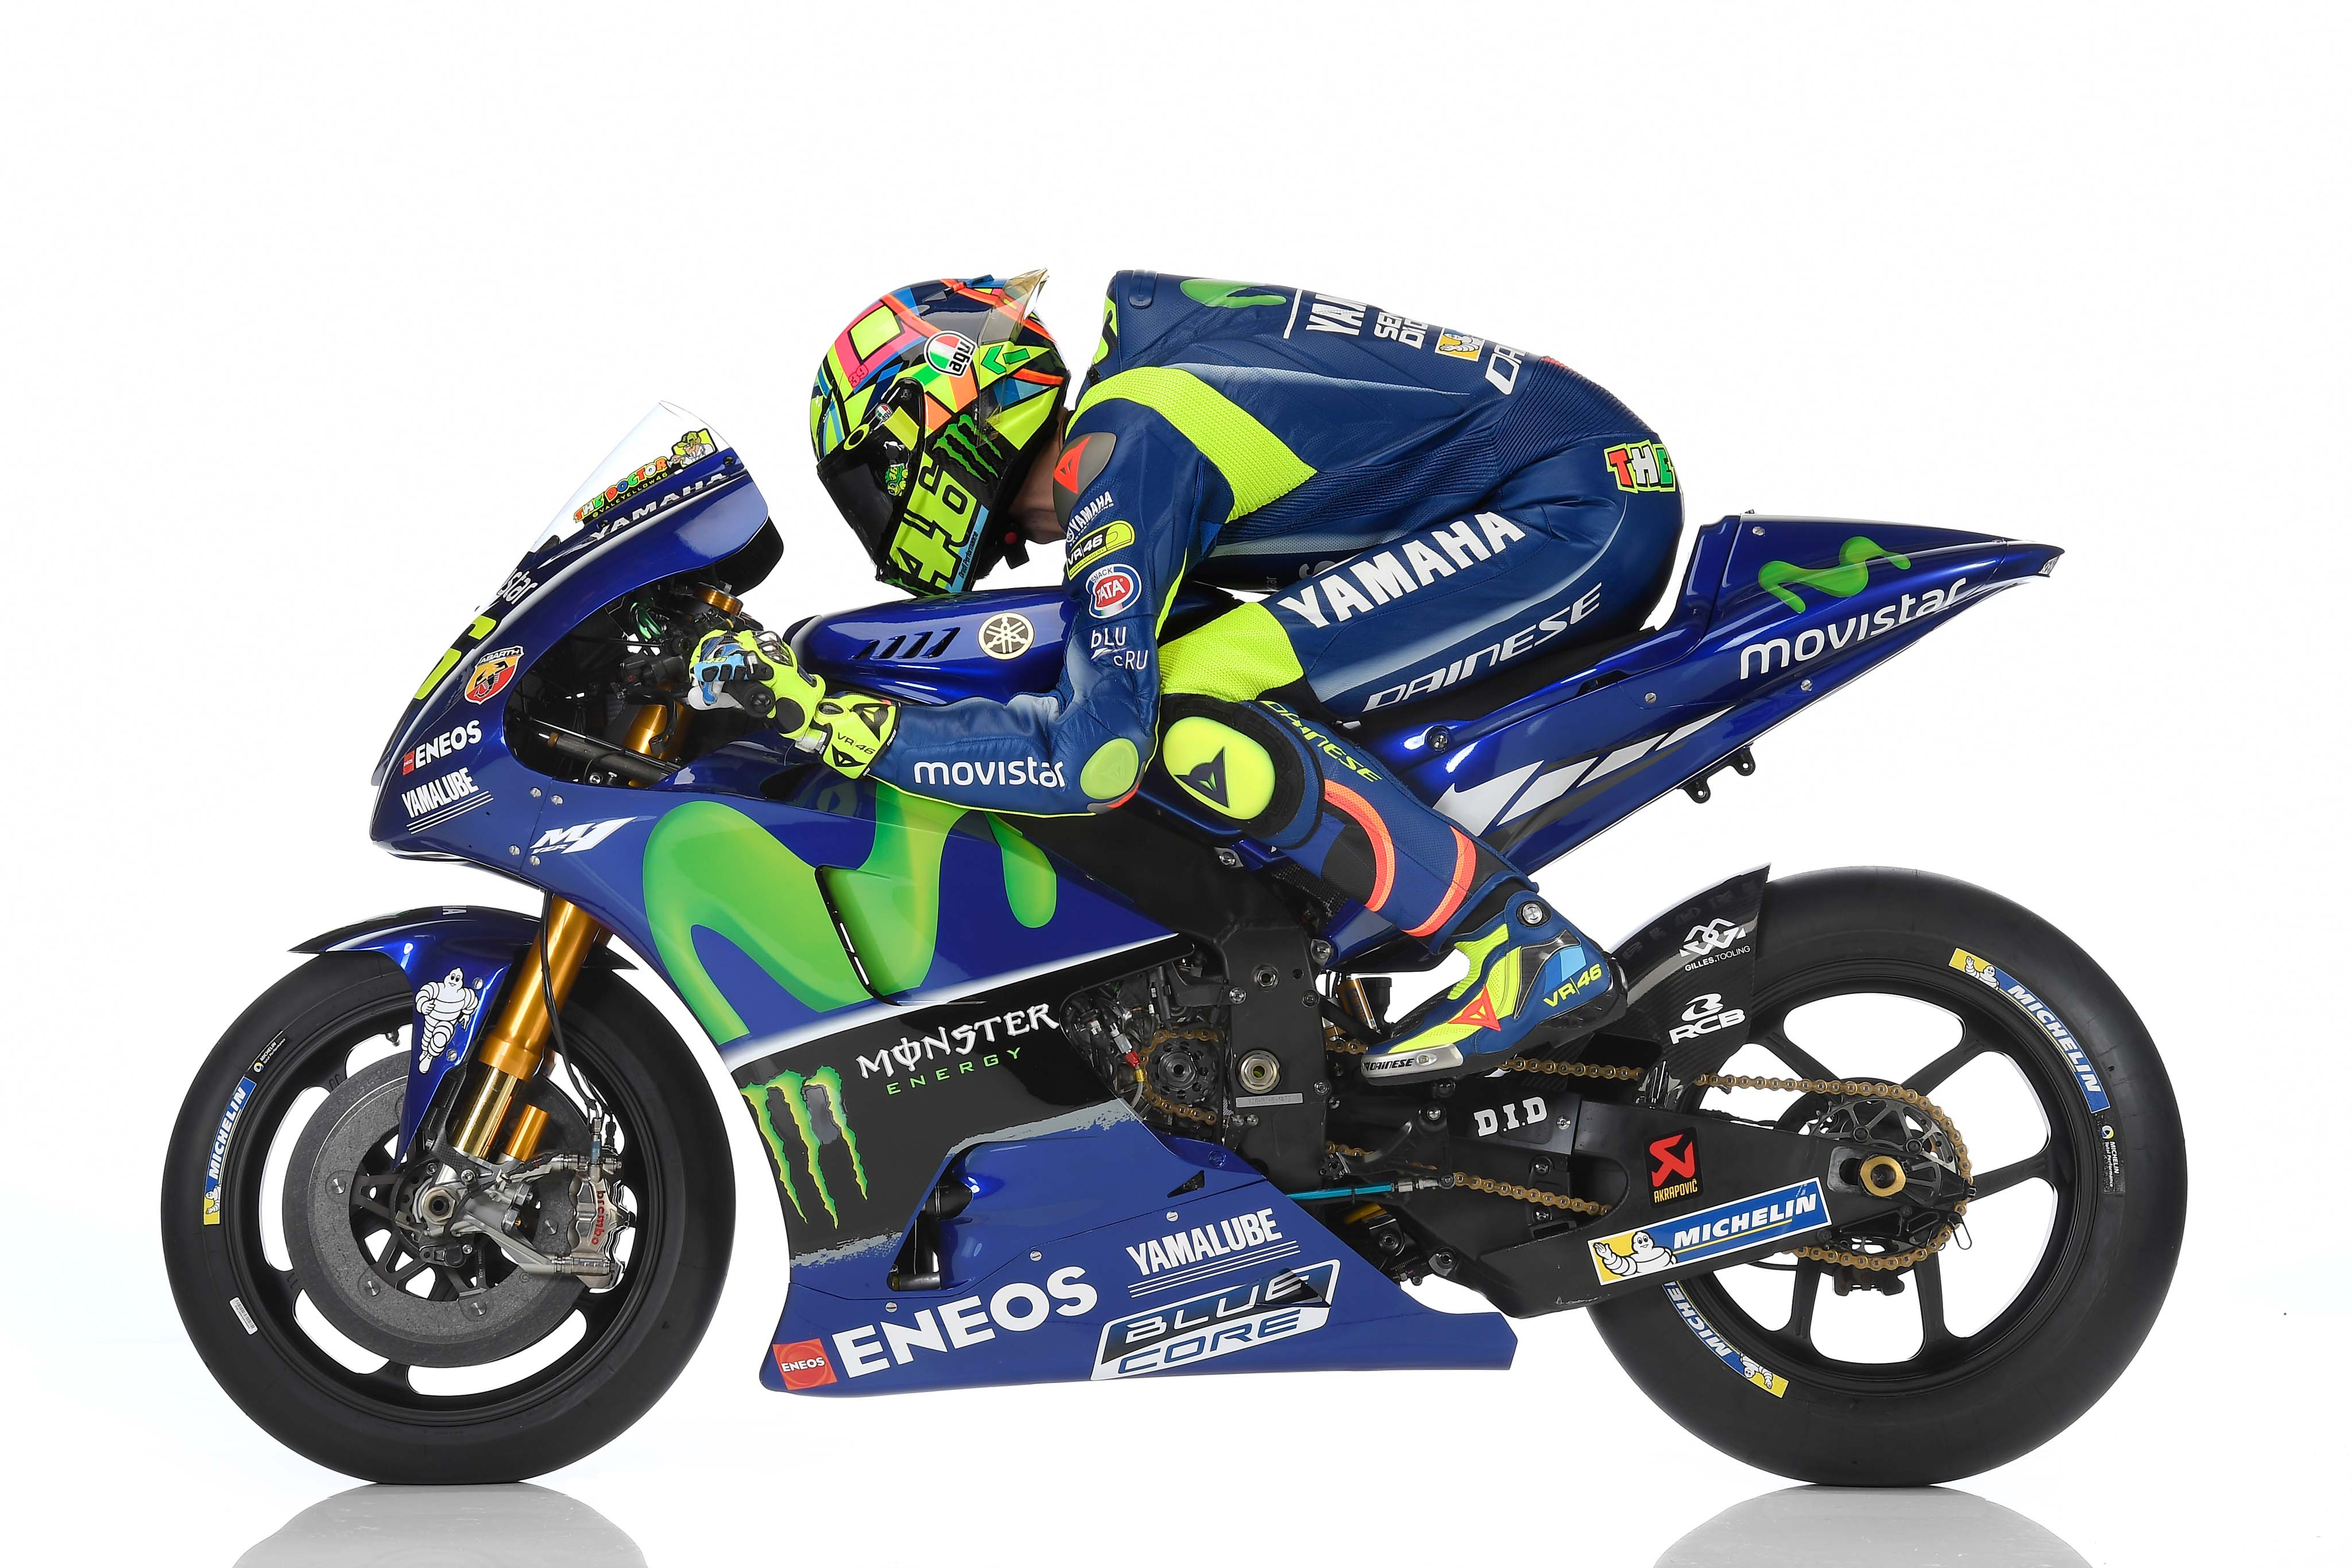 Motogp Valentino Rossi Yamaha YZR M1, HD Bikes, 4k Wallpapers, Image, Backgrounds, Photos and Pictures